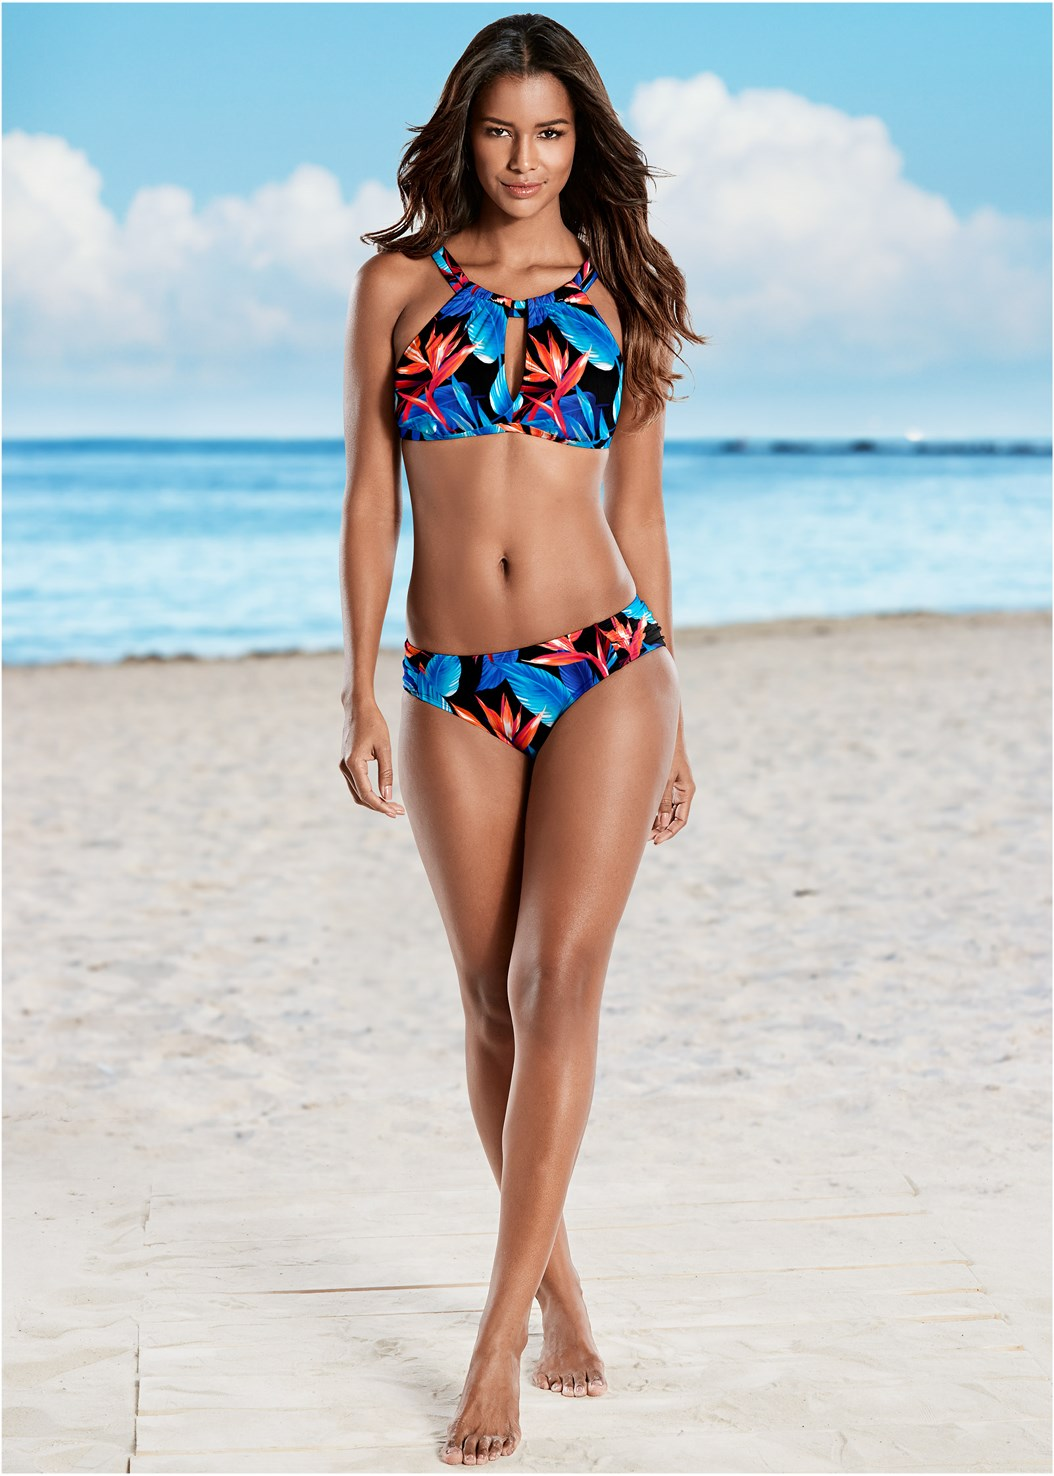 Keyhole High Neck Top,Ruched Low Rise Bottoms,Ruched High Waisted Bottoms,Swim Short,Adjustable Side Bottom